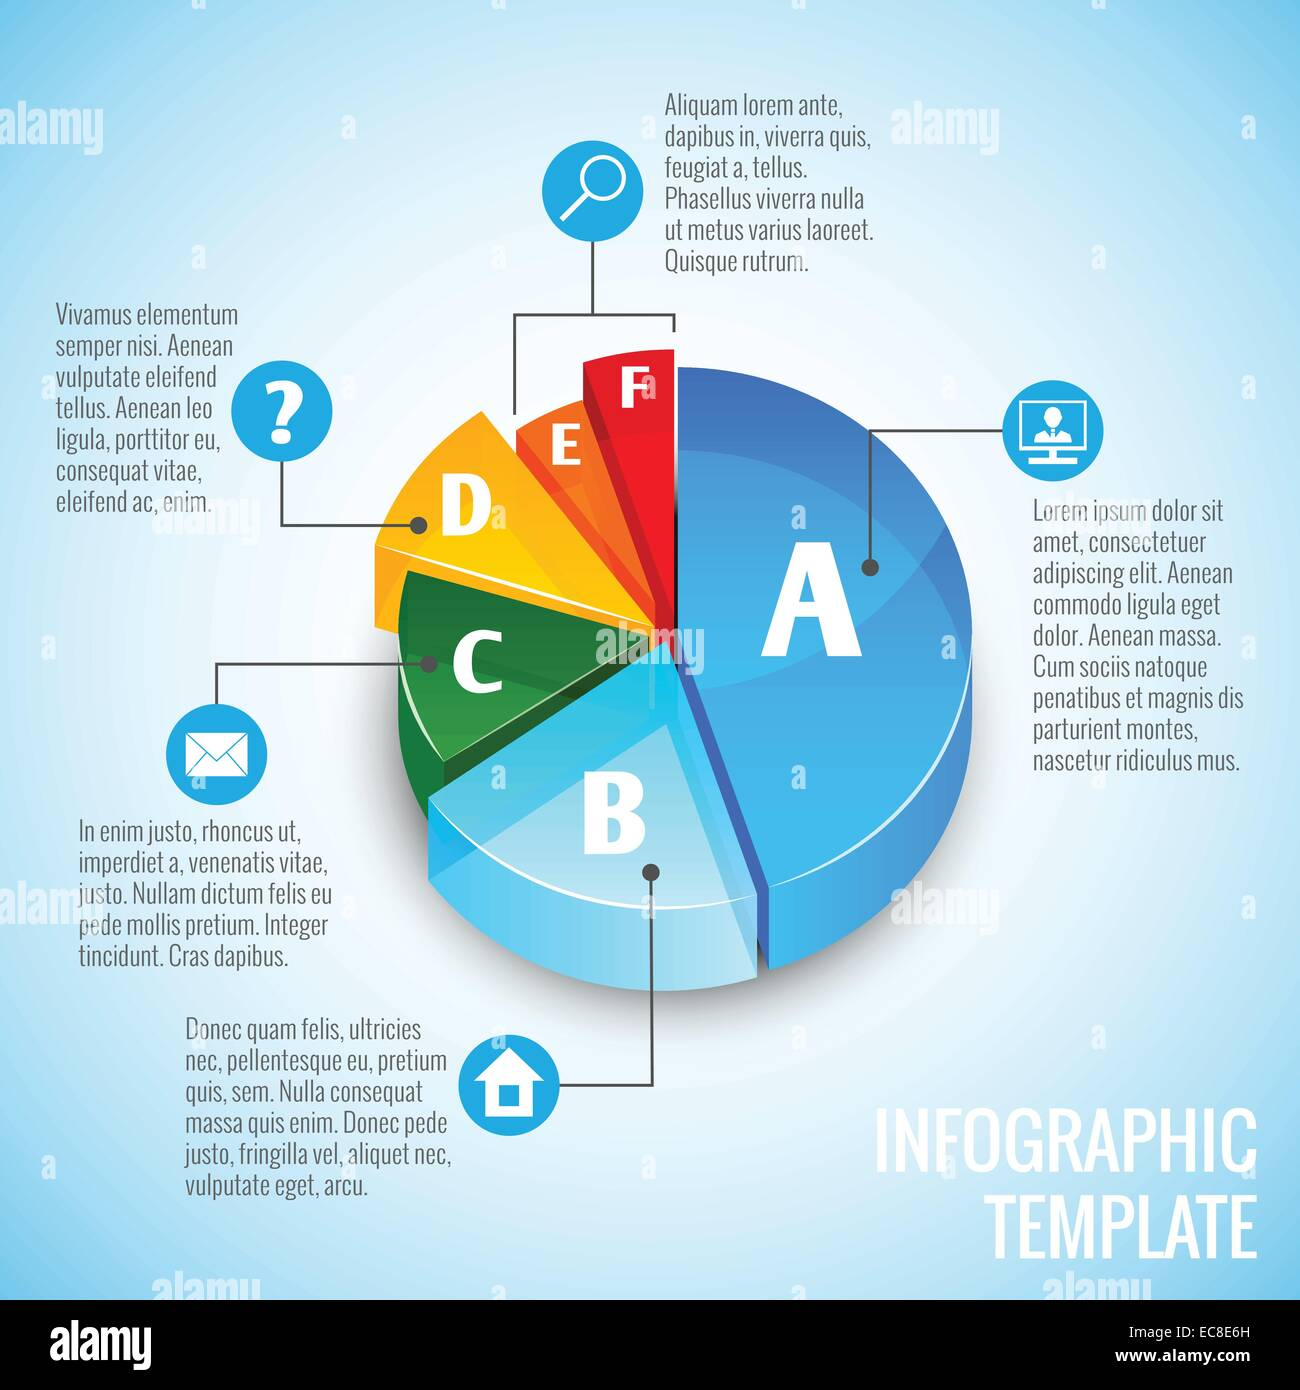 Create a 3d pie chart in excel images free any chart examples create a 3d pie chart in excel choice image free any chart examples 3d pie chart nvjuhfo Images